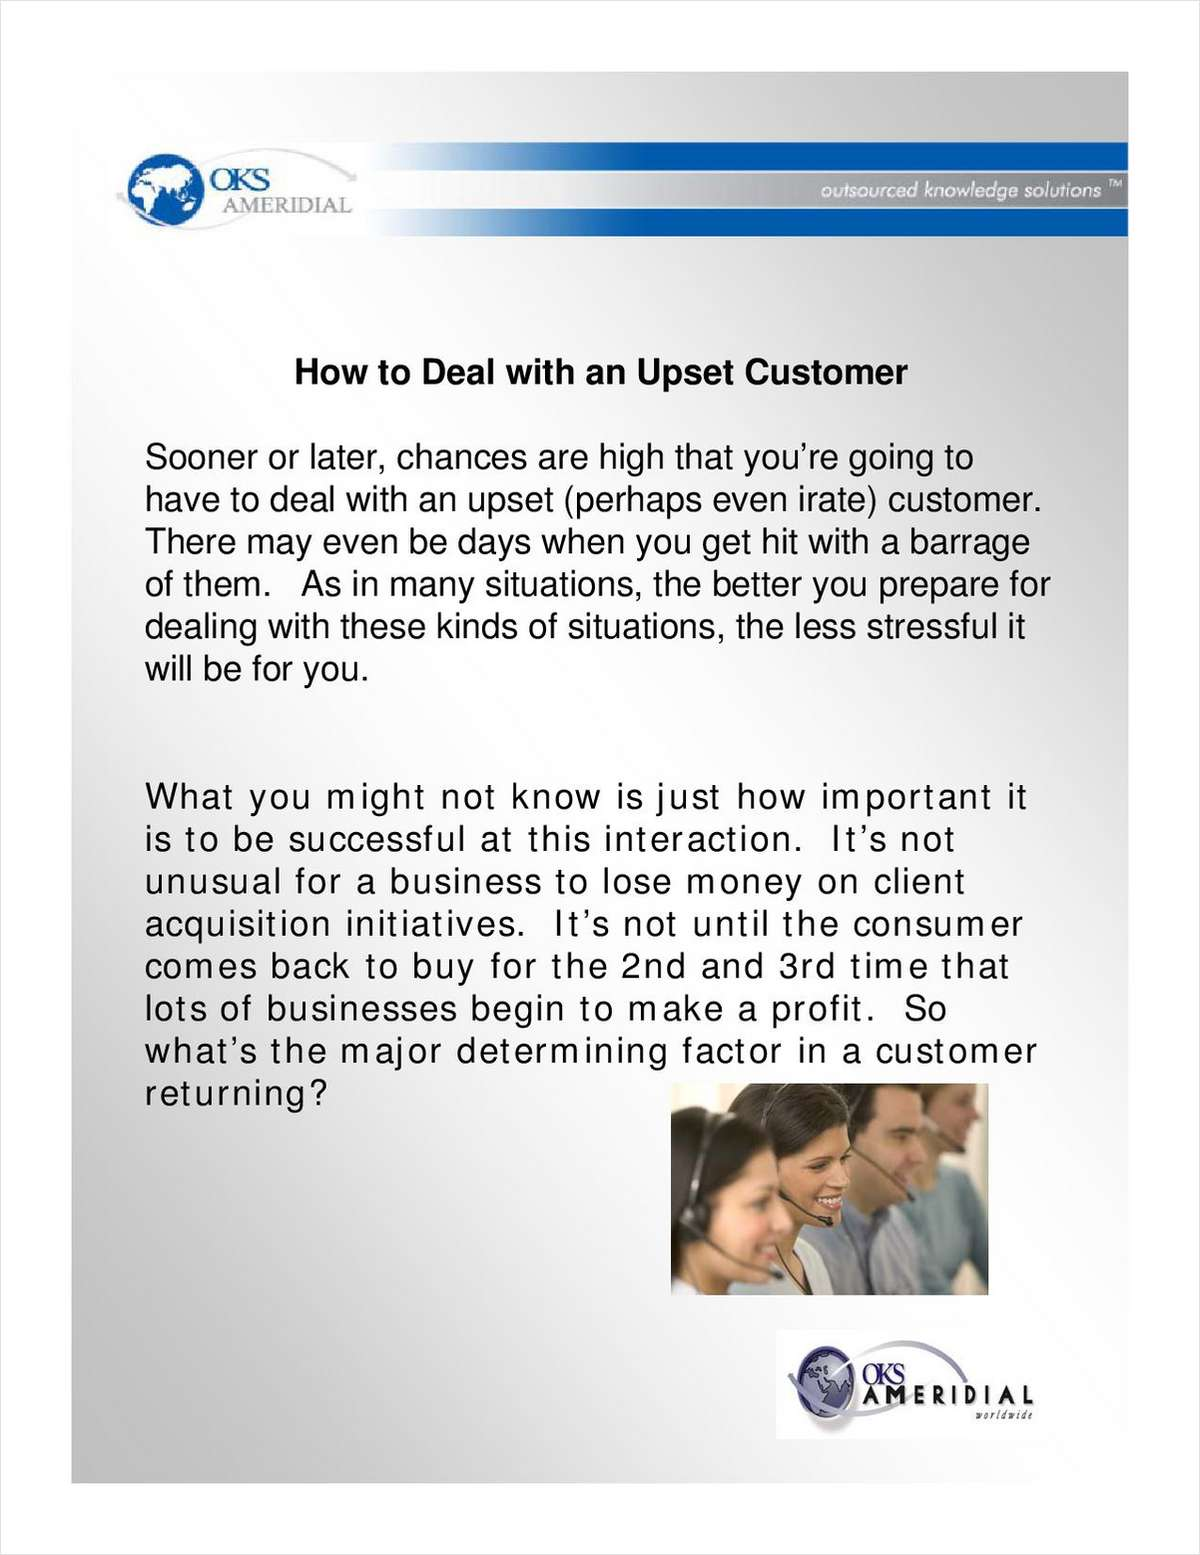 How to Deal with Upset Customers in the Call Center